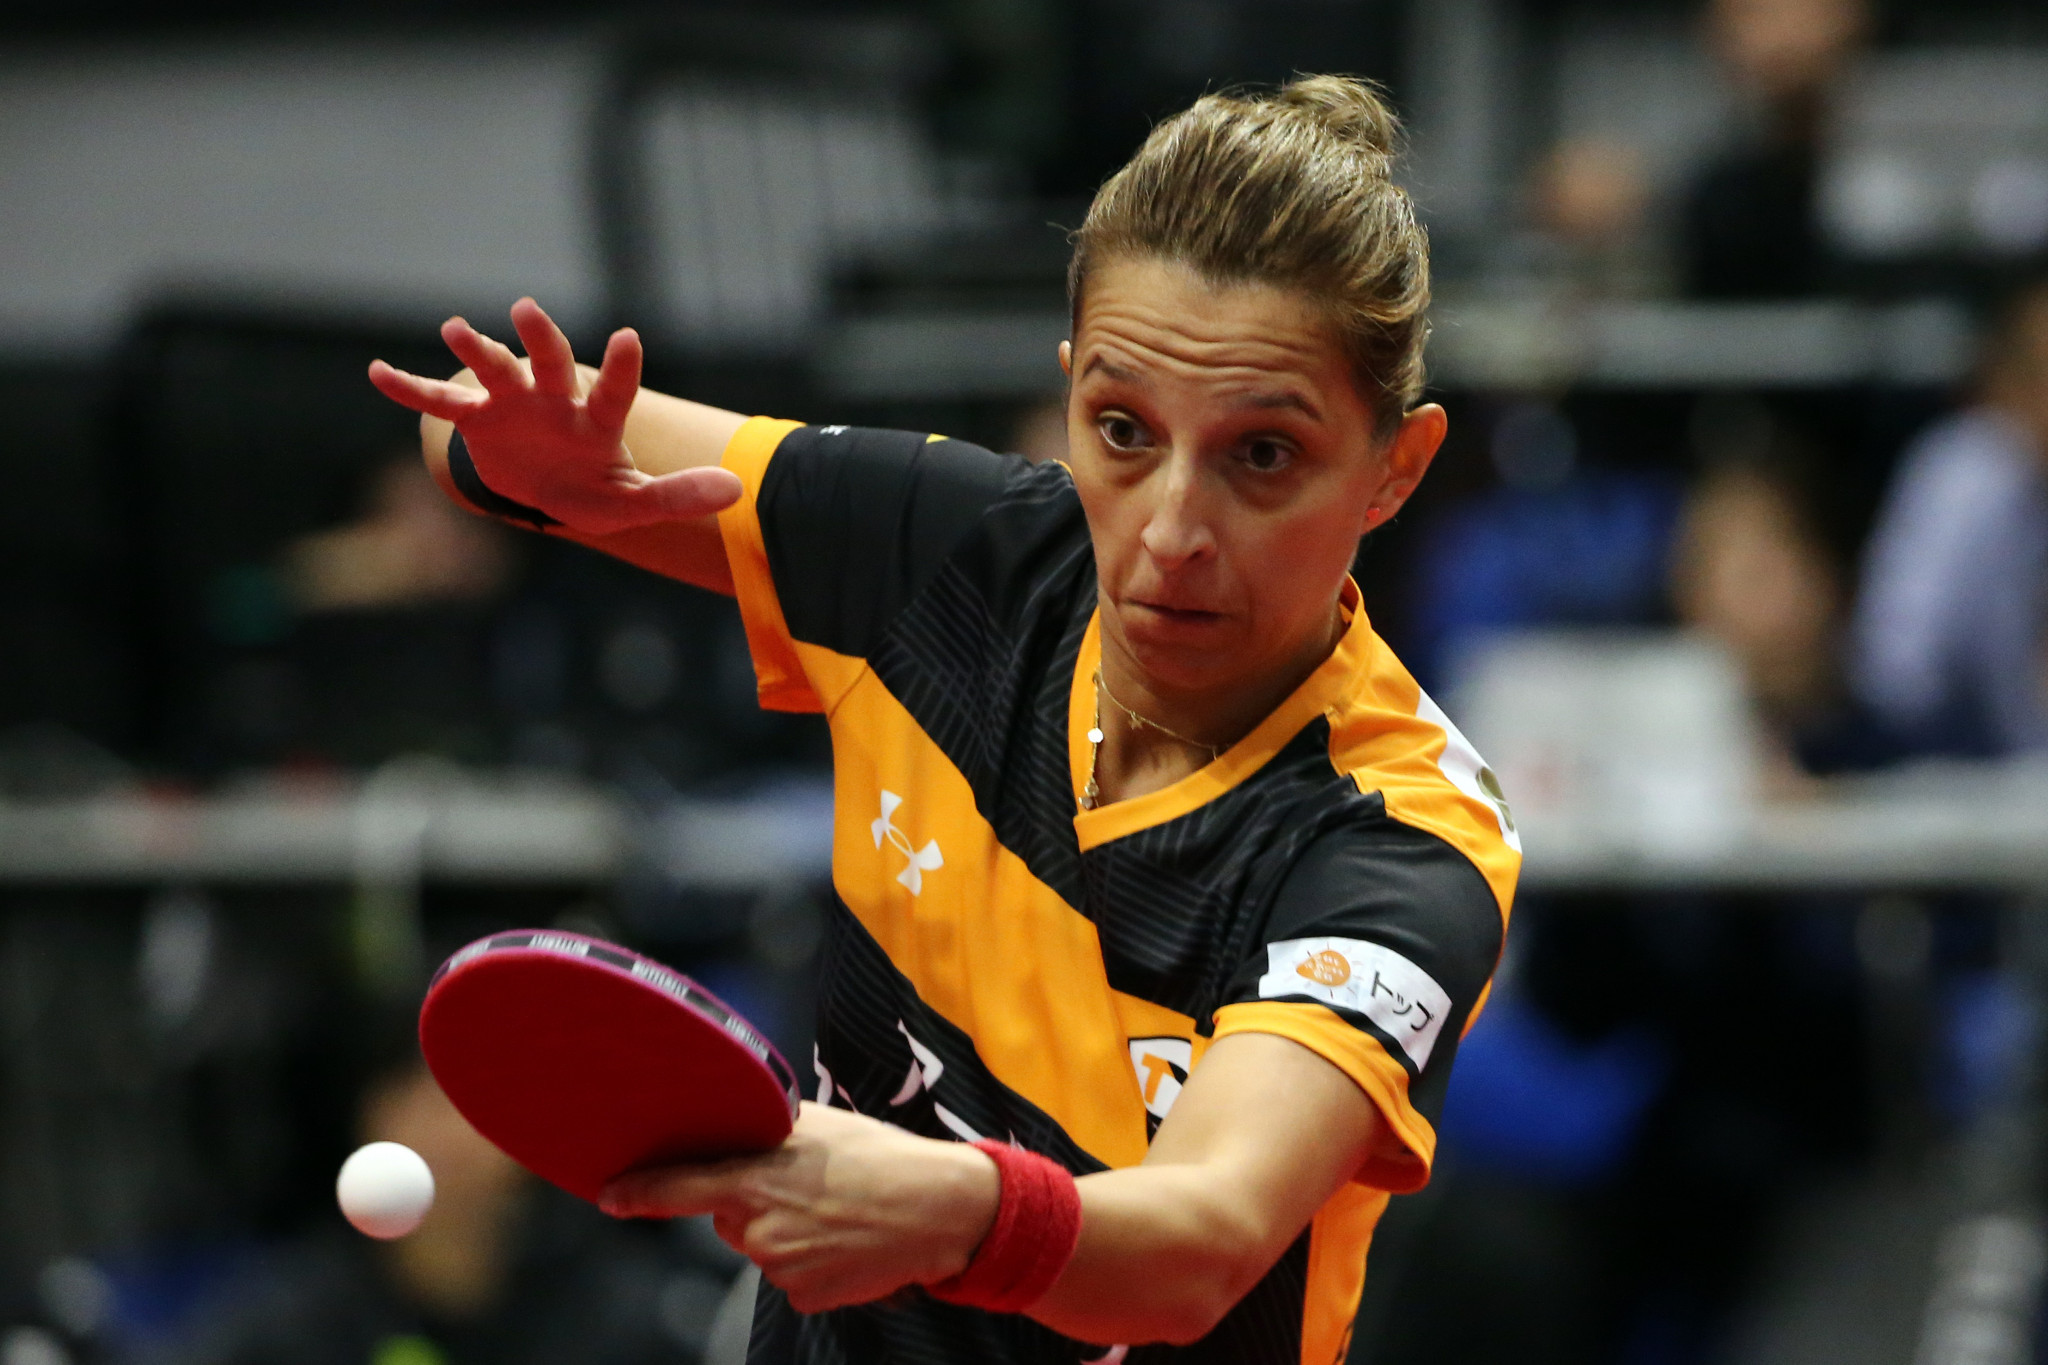 Defending champions Romania reach European Table Tennis Championships final